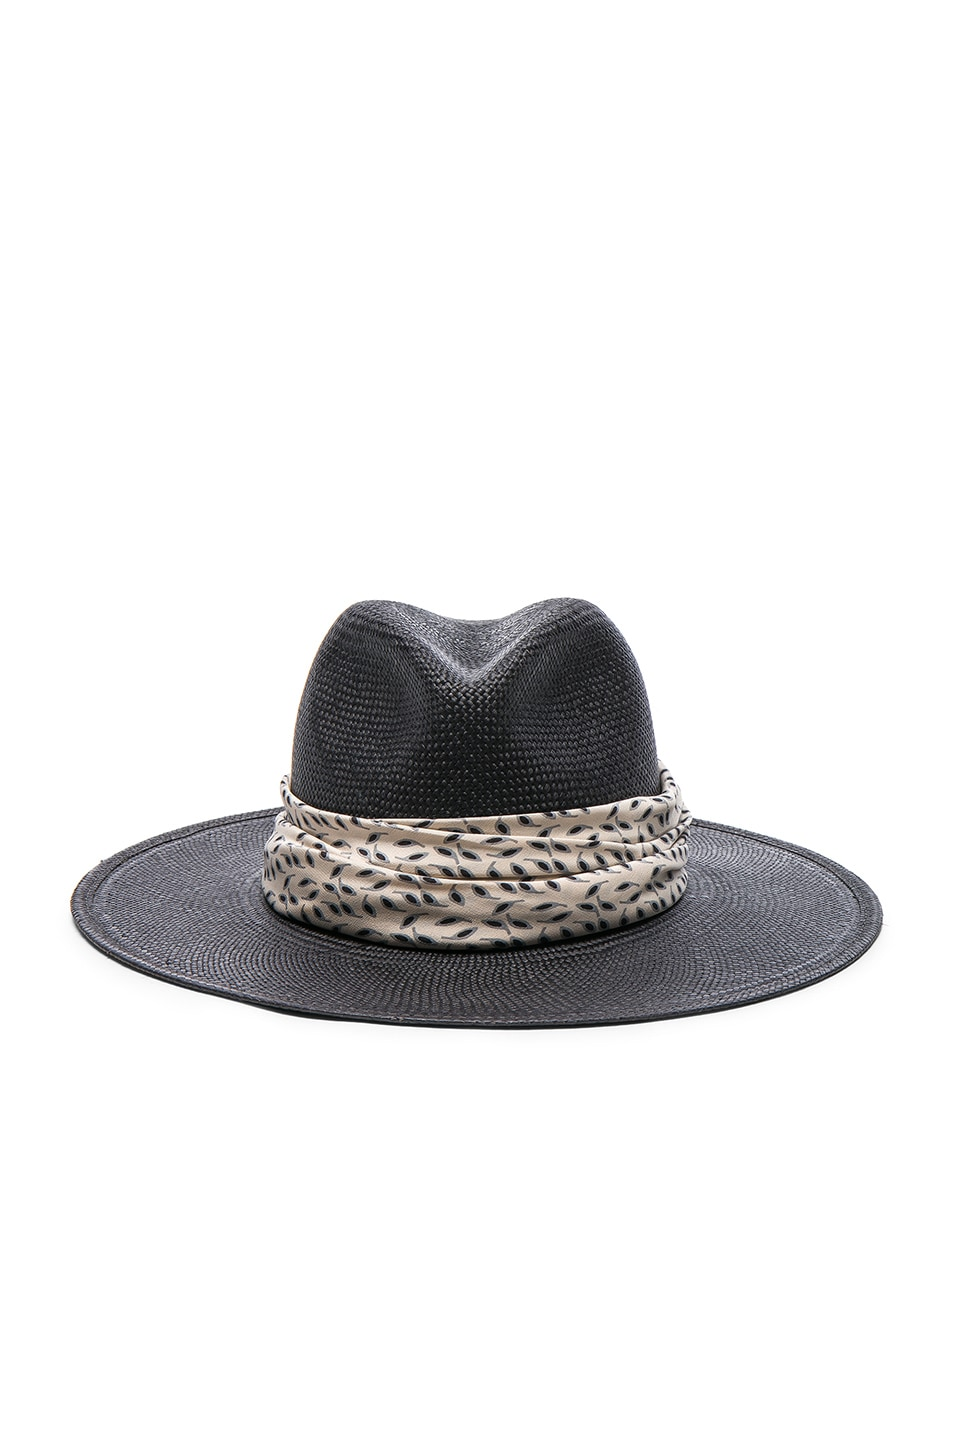 Image 1 of Janessa Leone Josephine Short Brimmed Panama Hat in Black